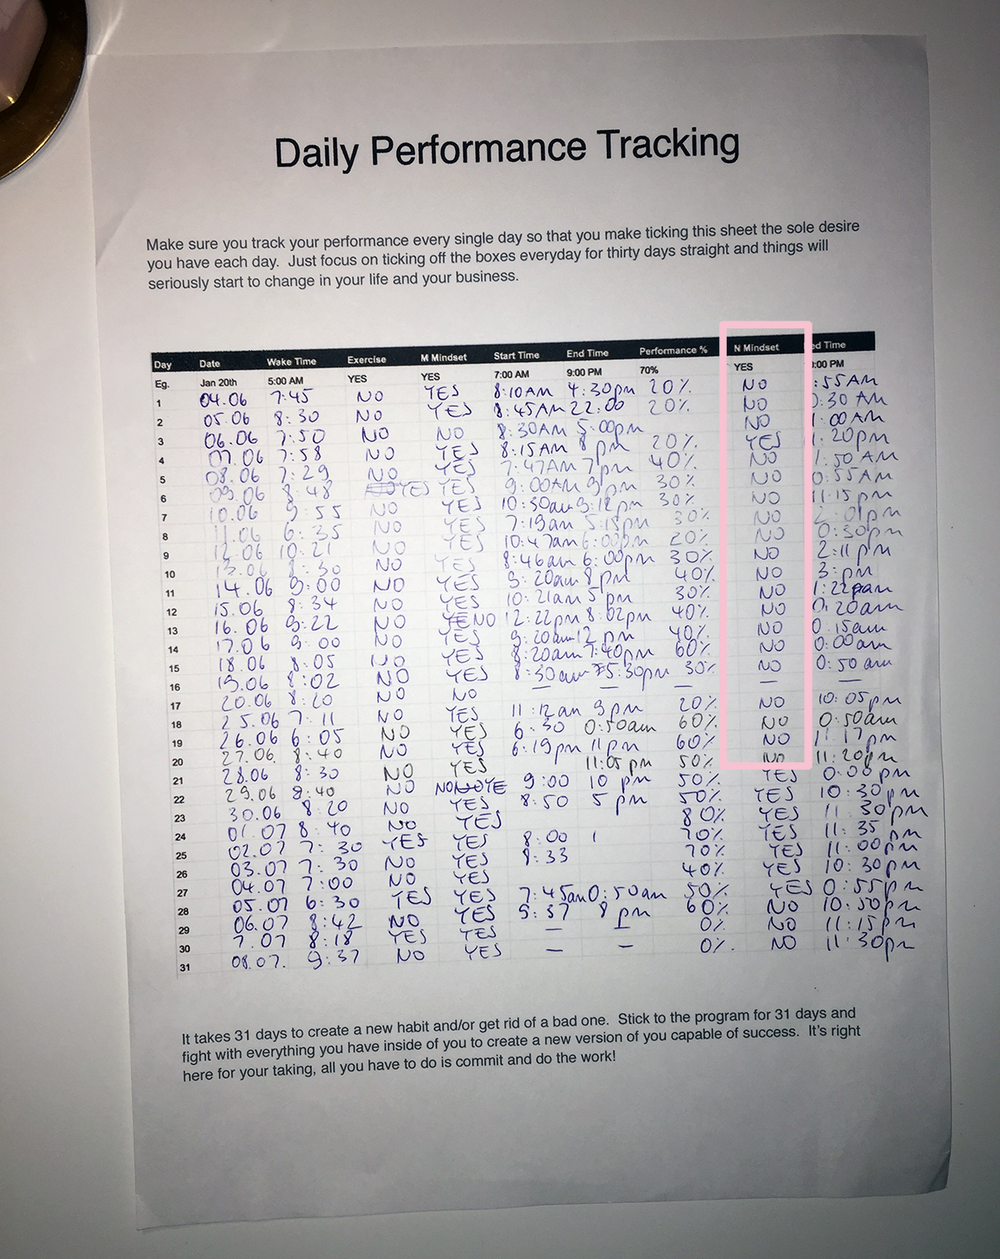 Pic 1 - Daily Performing Tracking sheet. At the beginning I never did my evening mindset work, because I was too tired at the end of the day and I didn't give it priority.